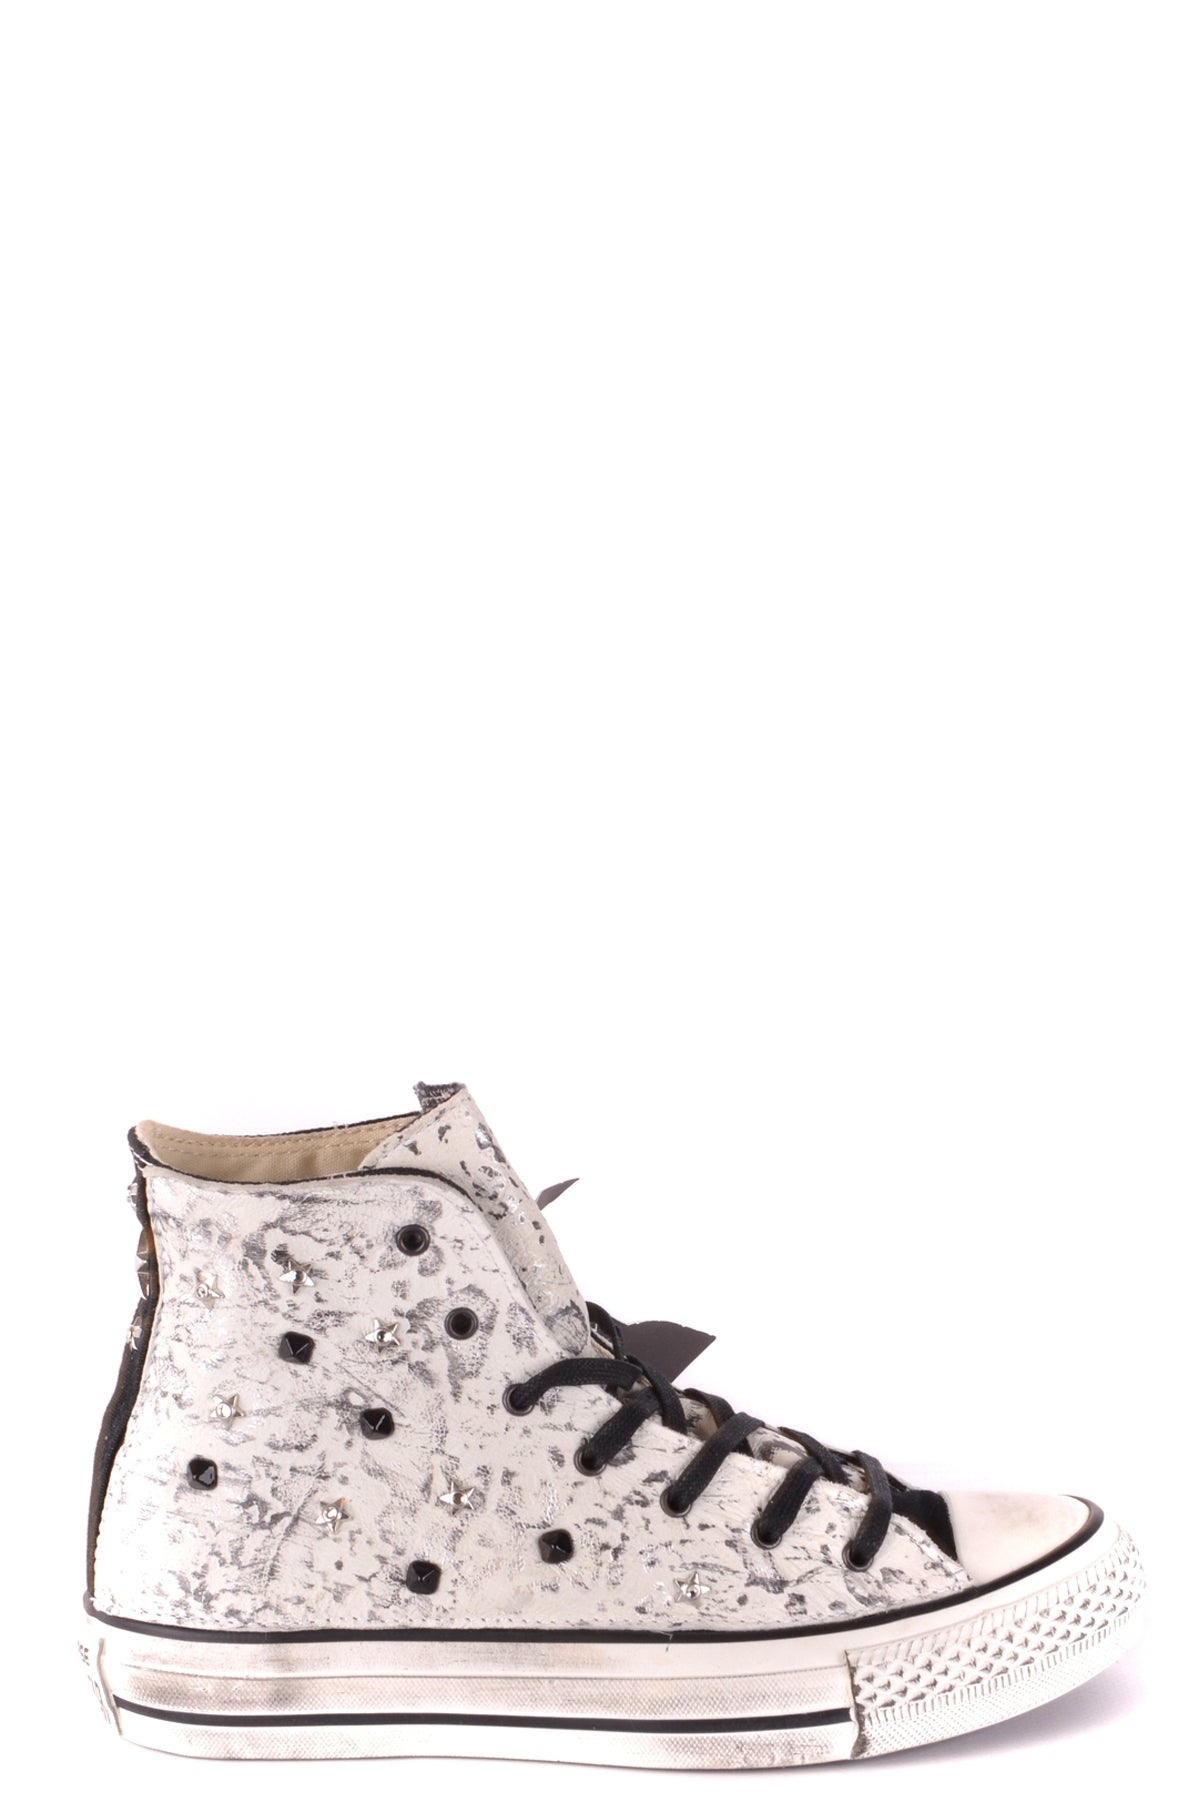 Shoes Converse-Sneakers - WOMAN-Product Details Type Of Accessory: ShoesTerms: New With LabelYear: 2018Main Color: WhiteGender: WomanMade In: IndonesiaManufacturer Part Number: Ic14Fa13Size: EuSeason: Spring / SummerComposition: Leather 100%-Keyomi-Sook